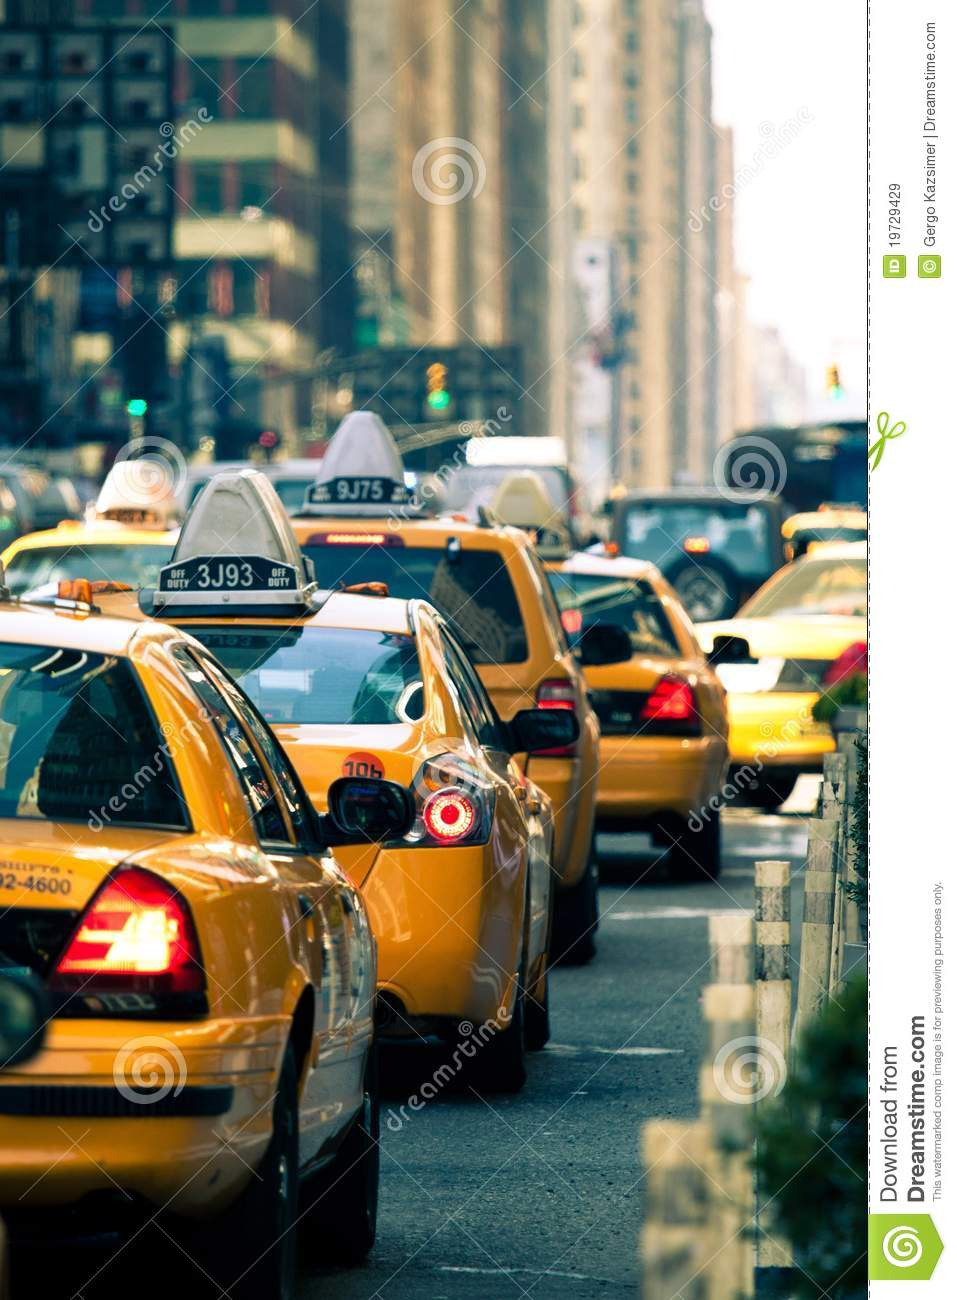 Taxis à New York City